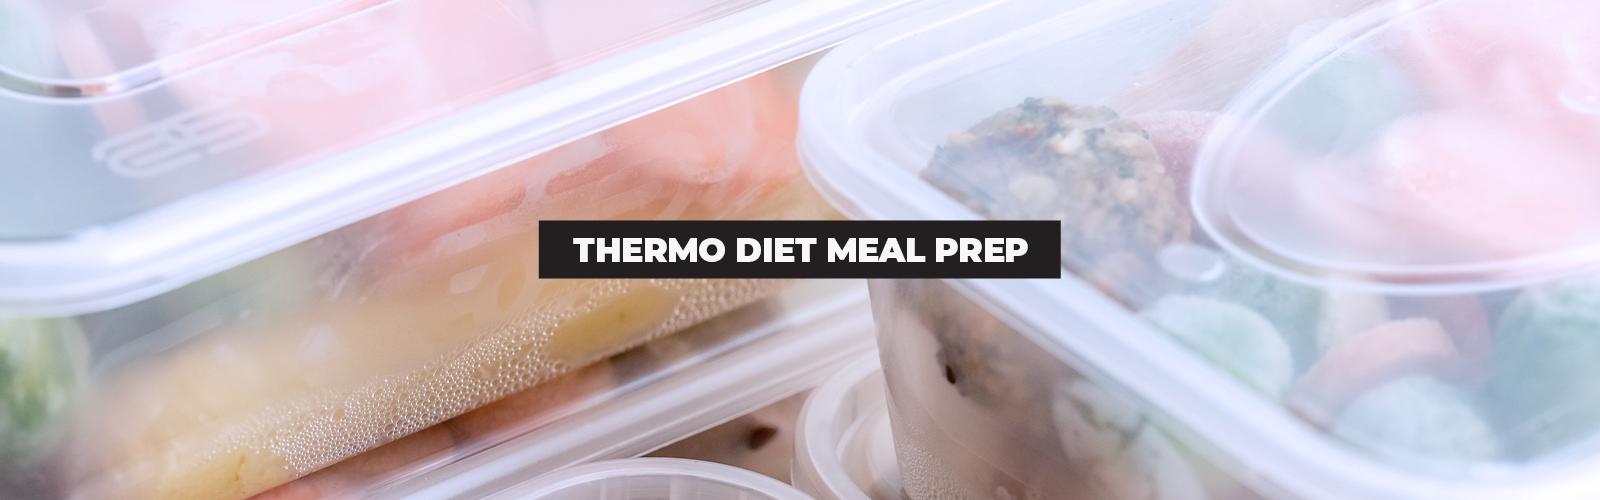 How to Meal Prep on the Thermo Diet | The Complete Guide